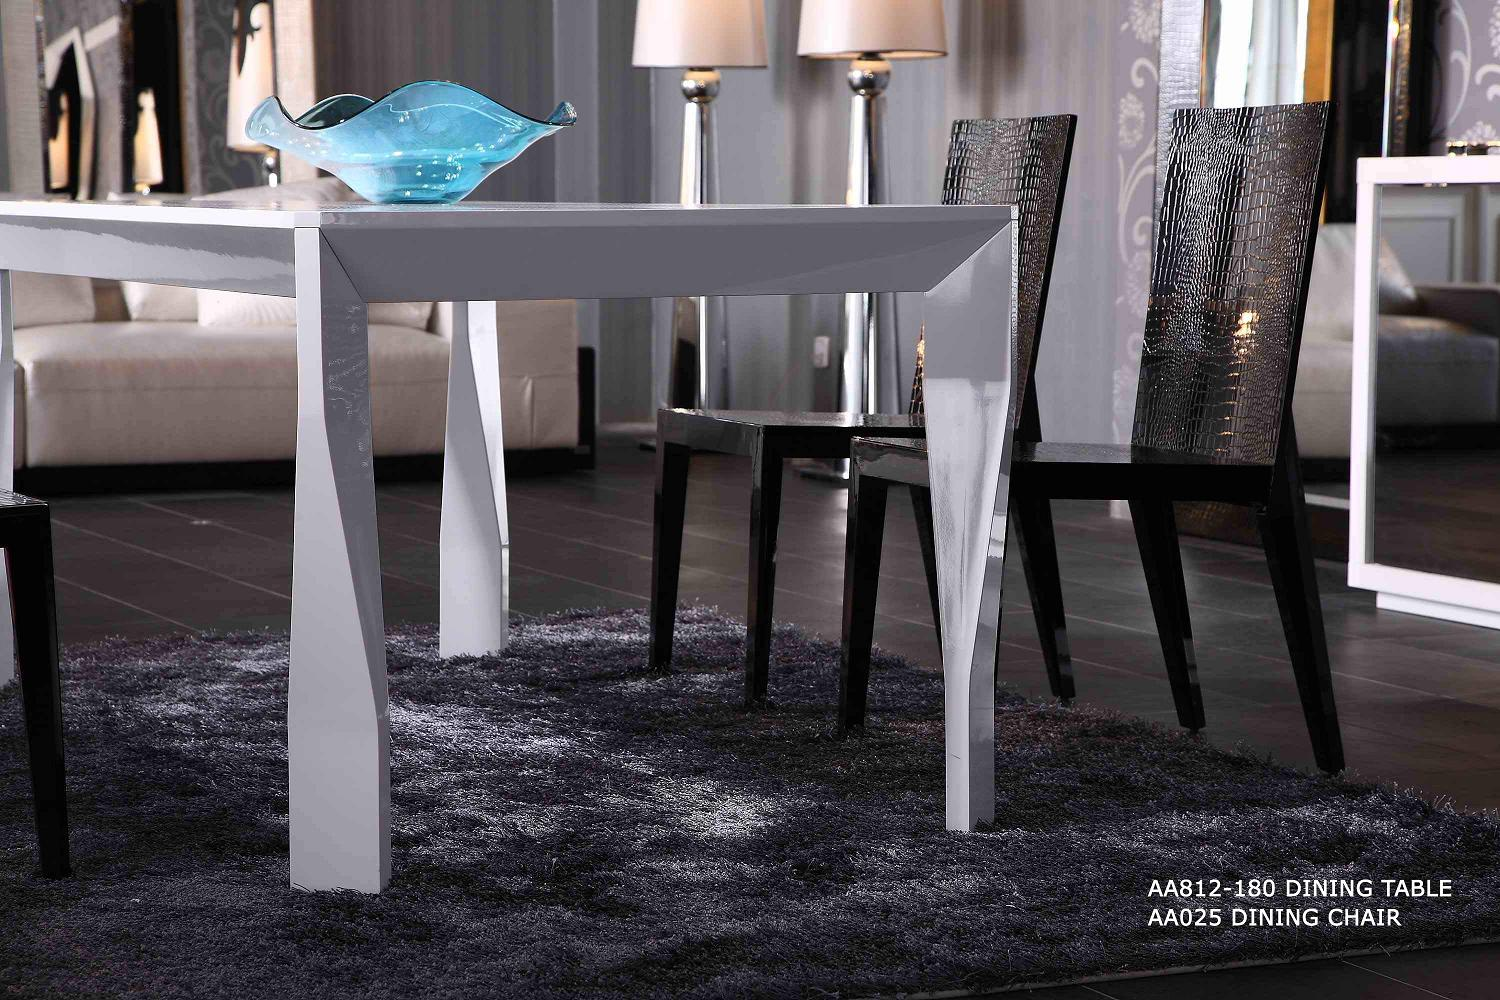 Dining table design guidelines